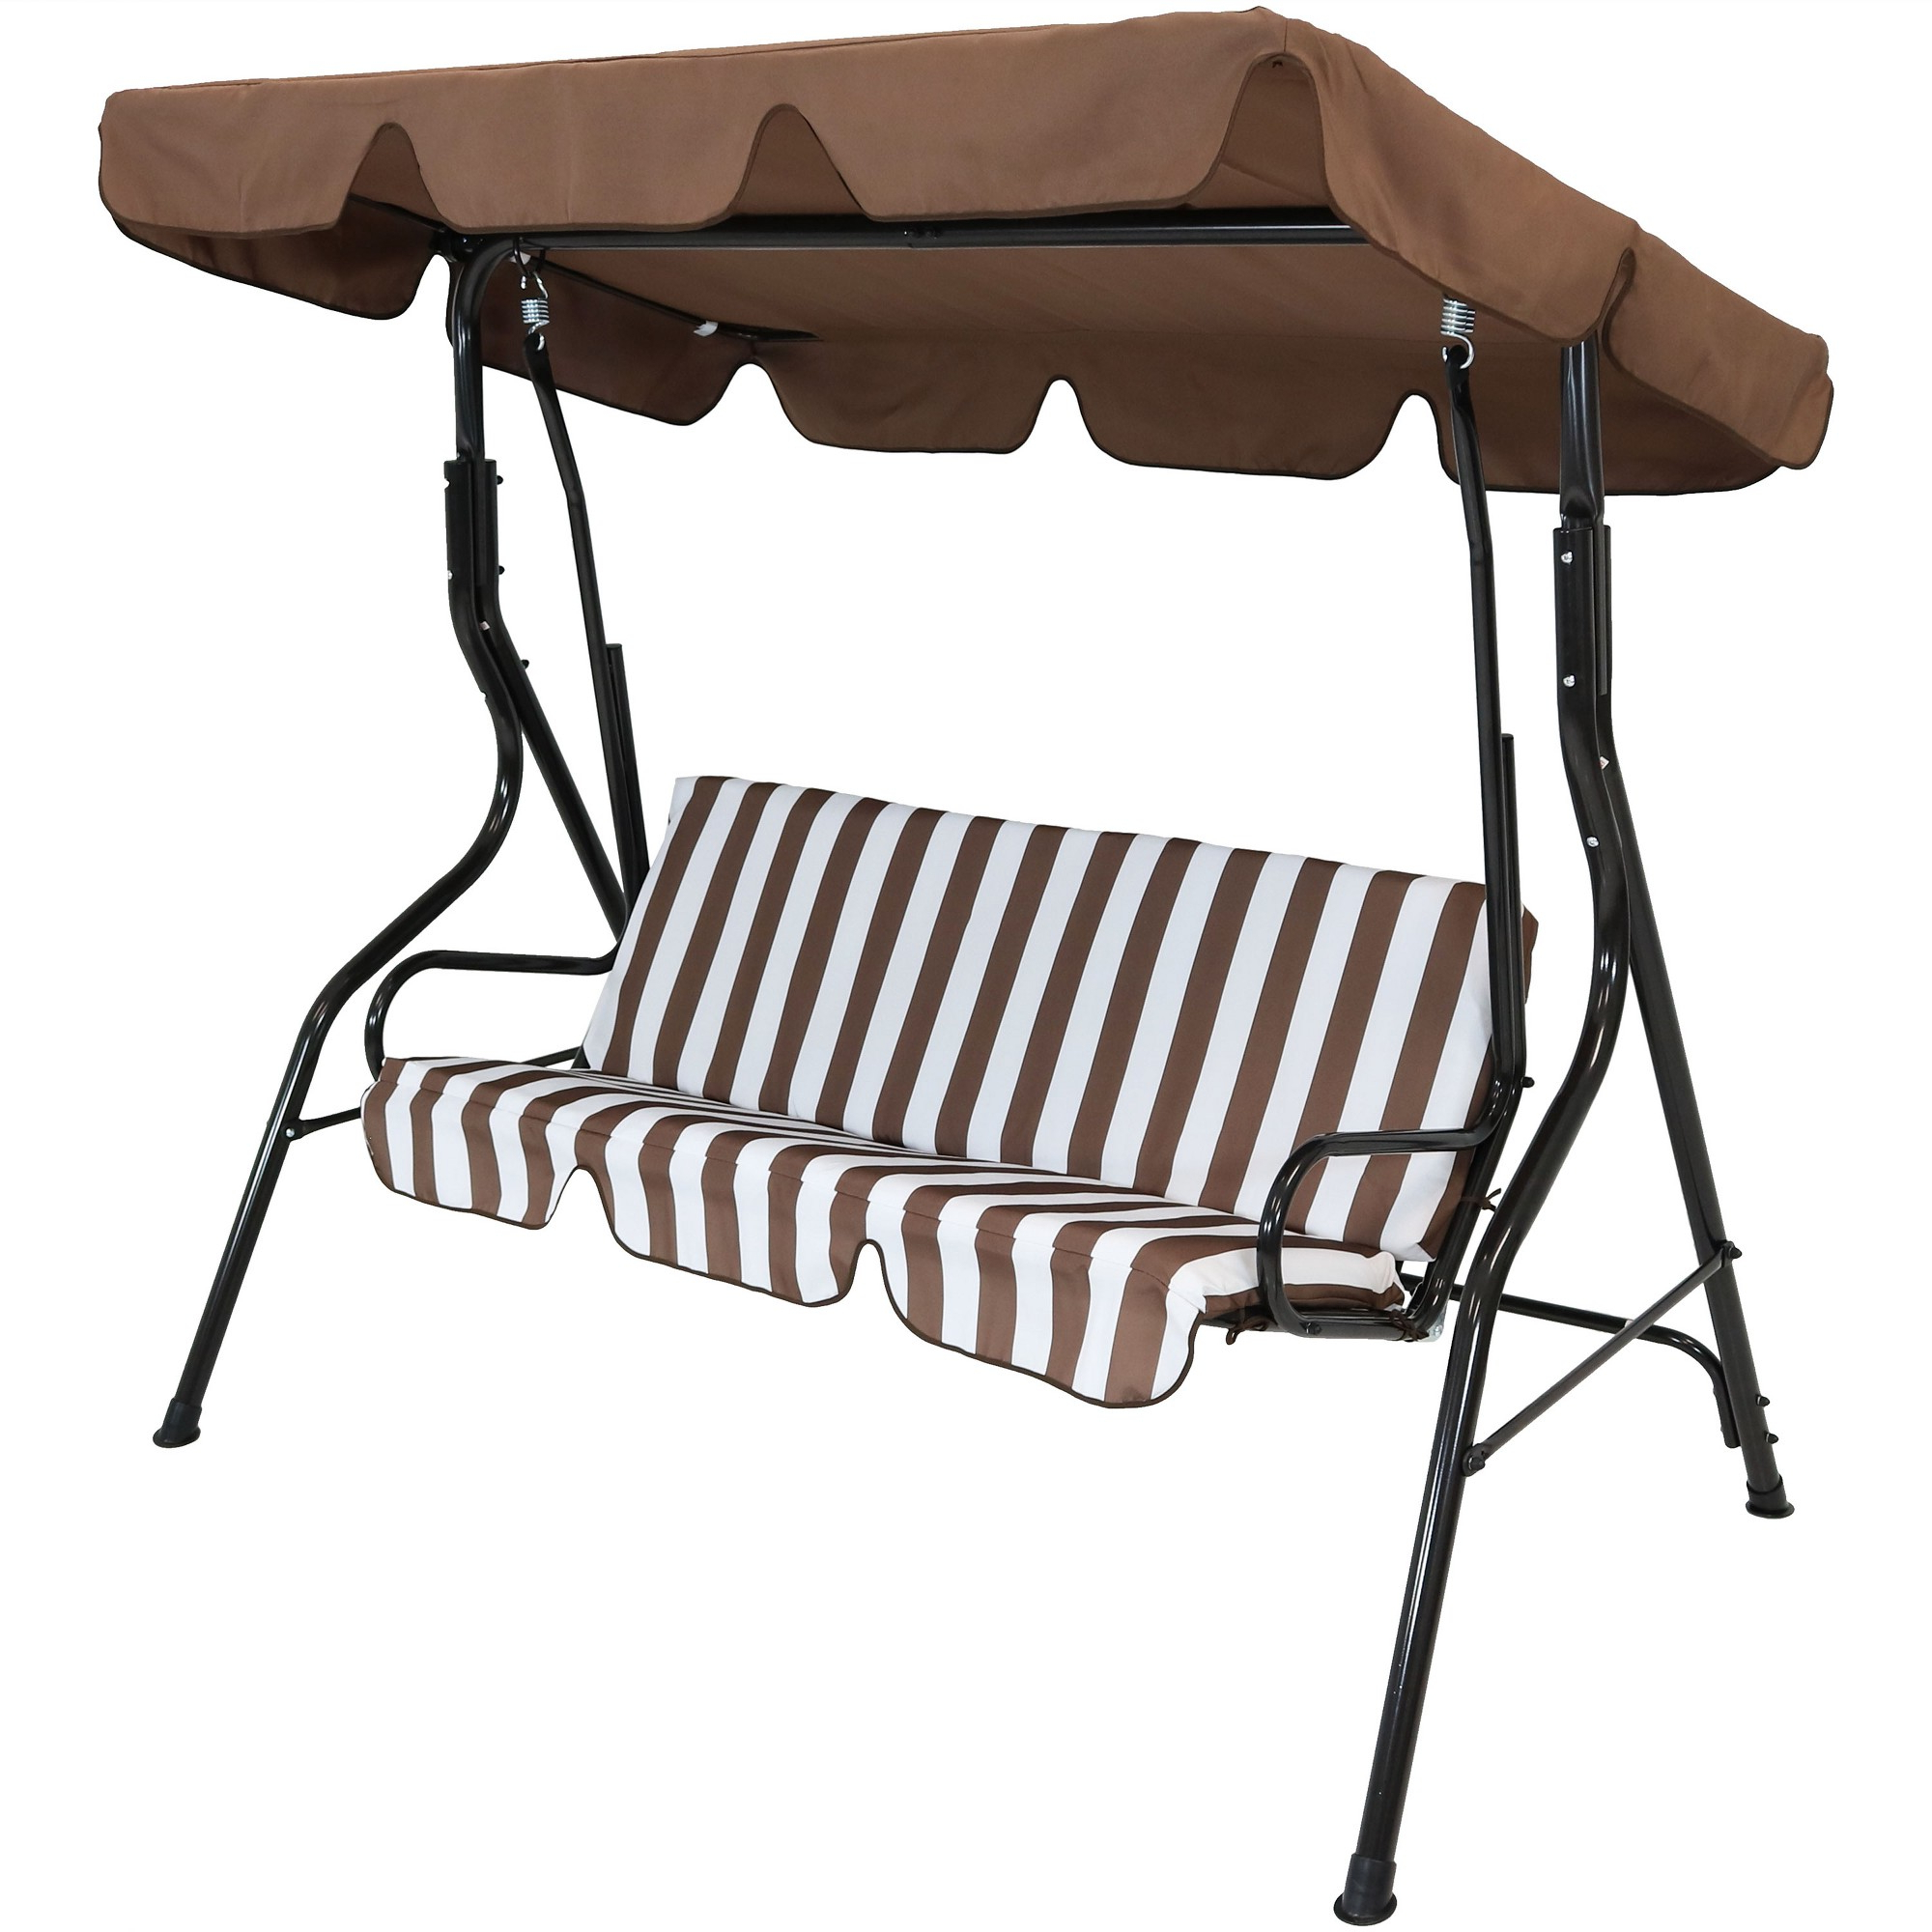 2 Person Black Wood Outdoor Swings Throughout Trendy 2 Person Steel Frame Porch Swing With Adjustable Canopy (View 7 of 30)